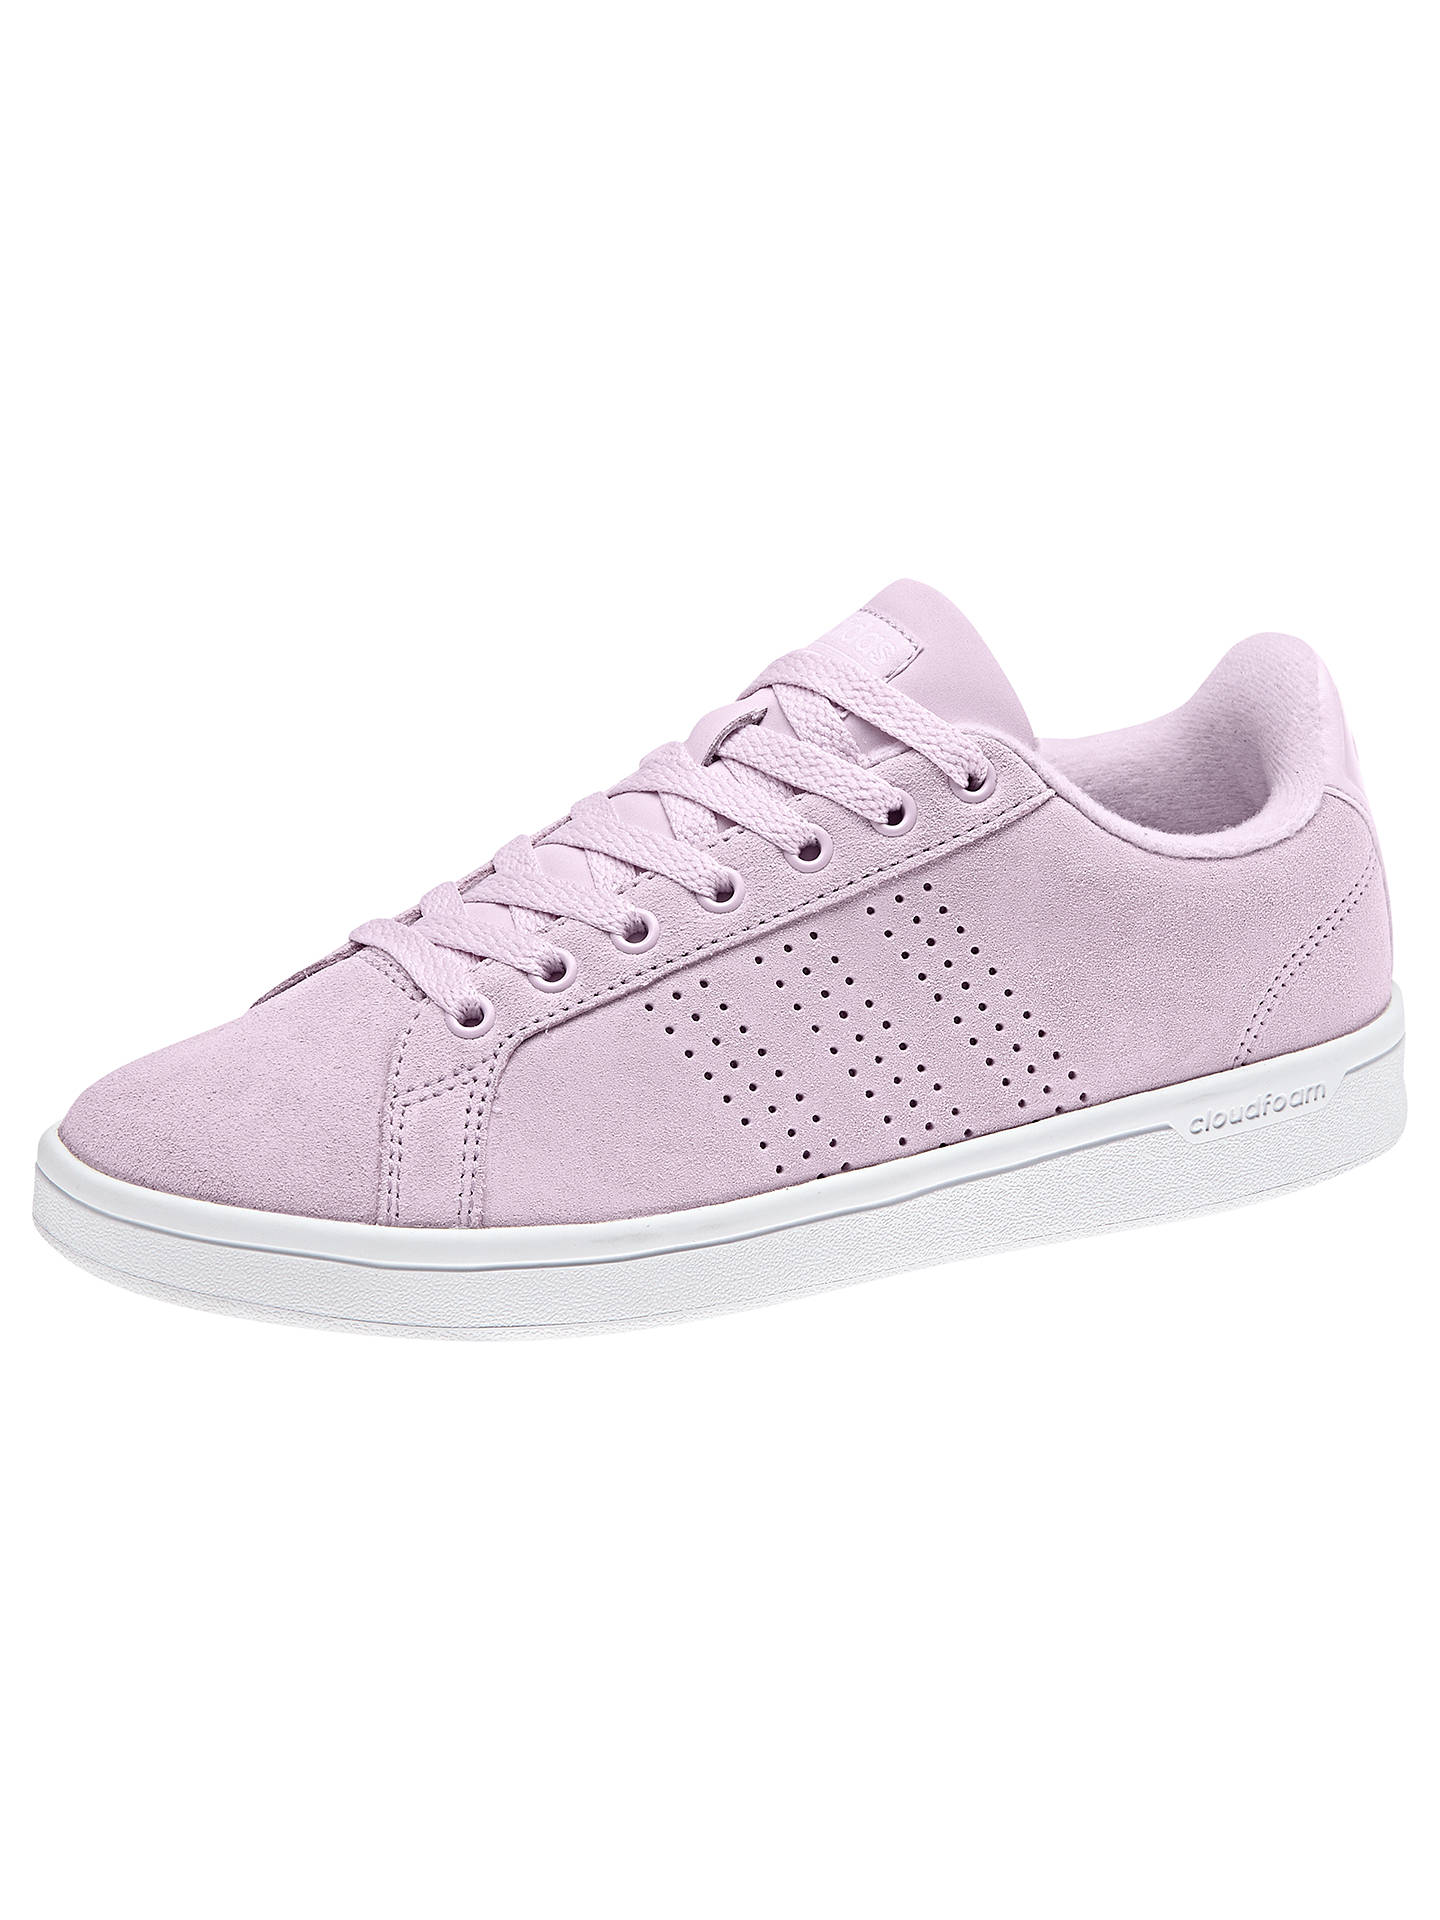 watch 7a360 81da0 Buy adidas Neo Cloudfoam Advantage Women s Trainers, Aero Pink, 4 Online at  johnlewis.